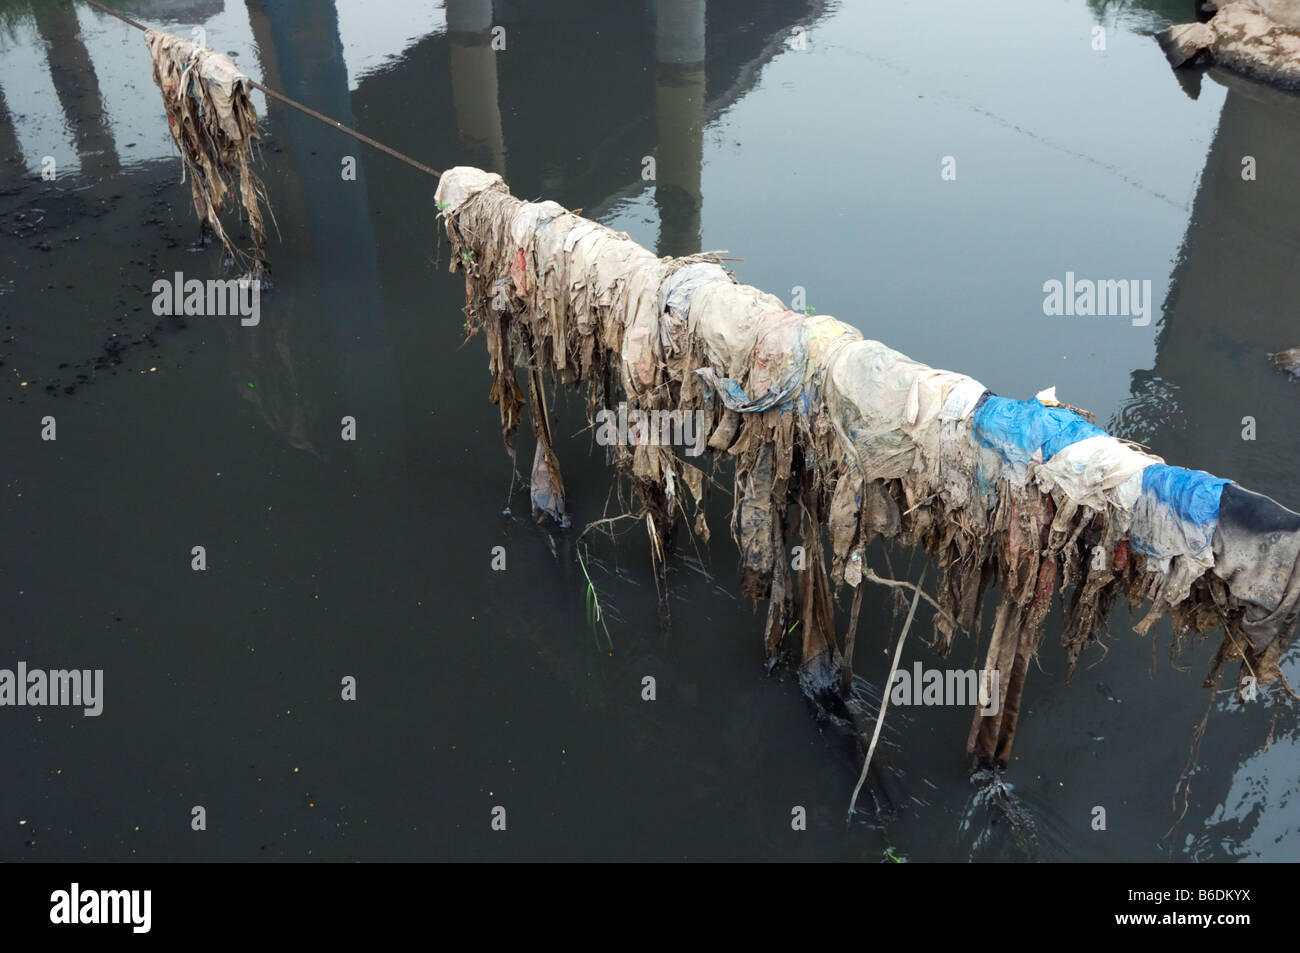 Black polluted waste water from factory discharge, Chongqing, China - Stock Image